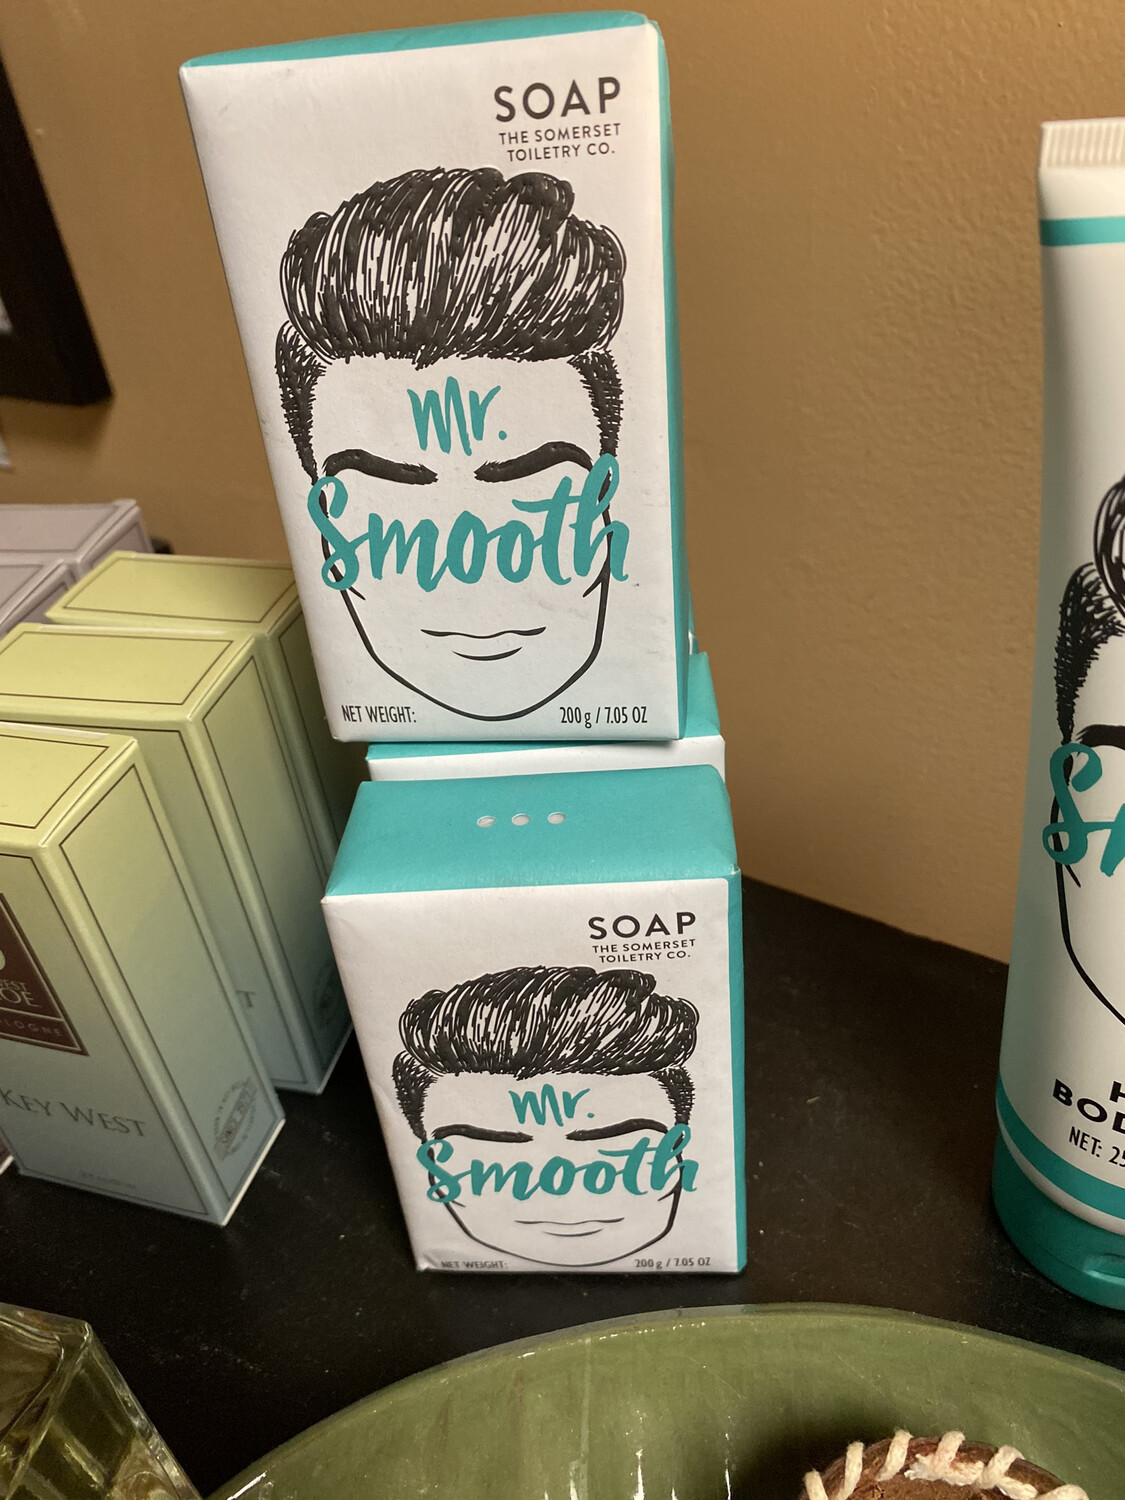 Mr. Smooth Soap